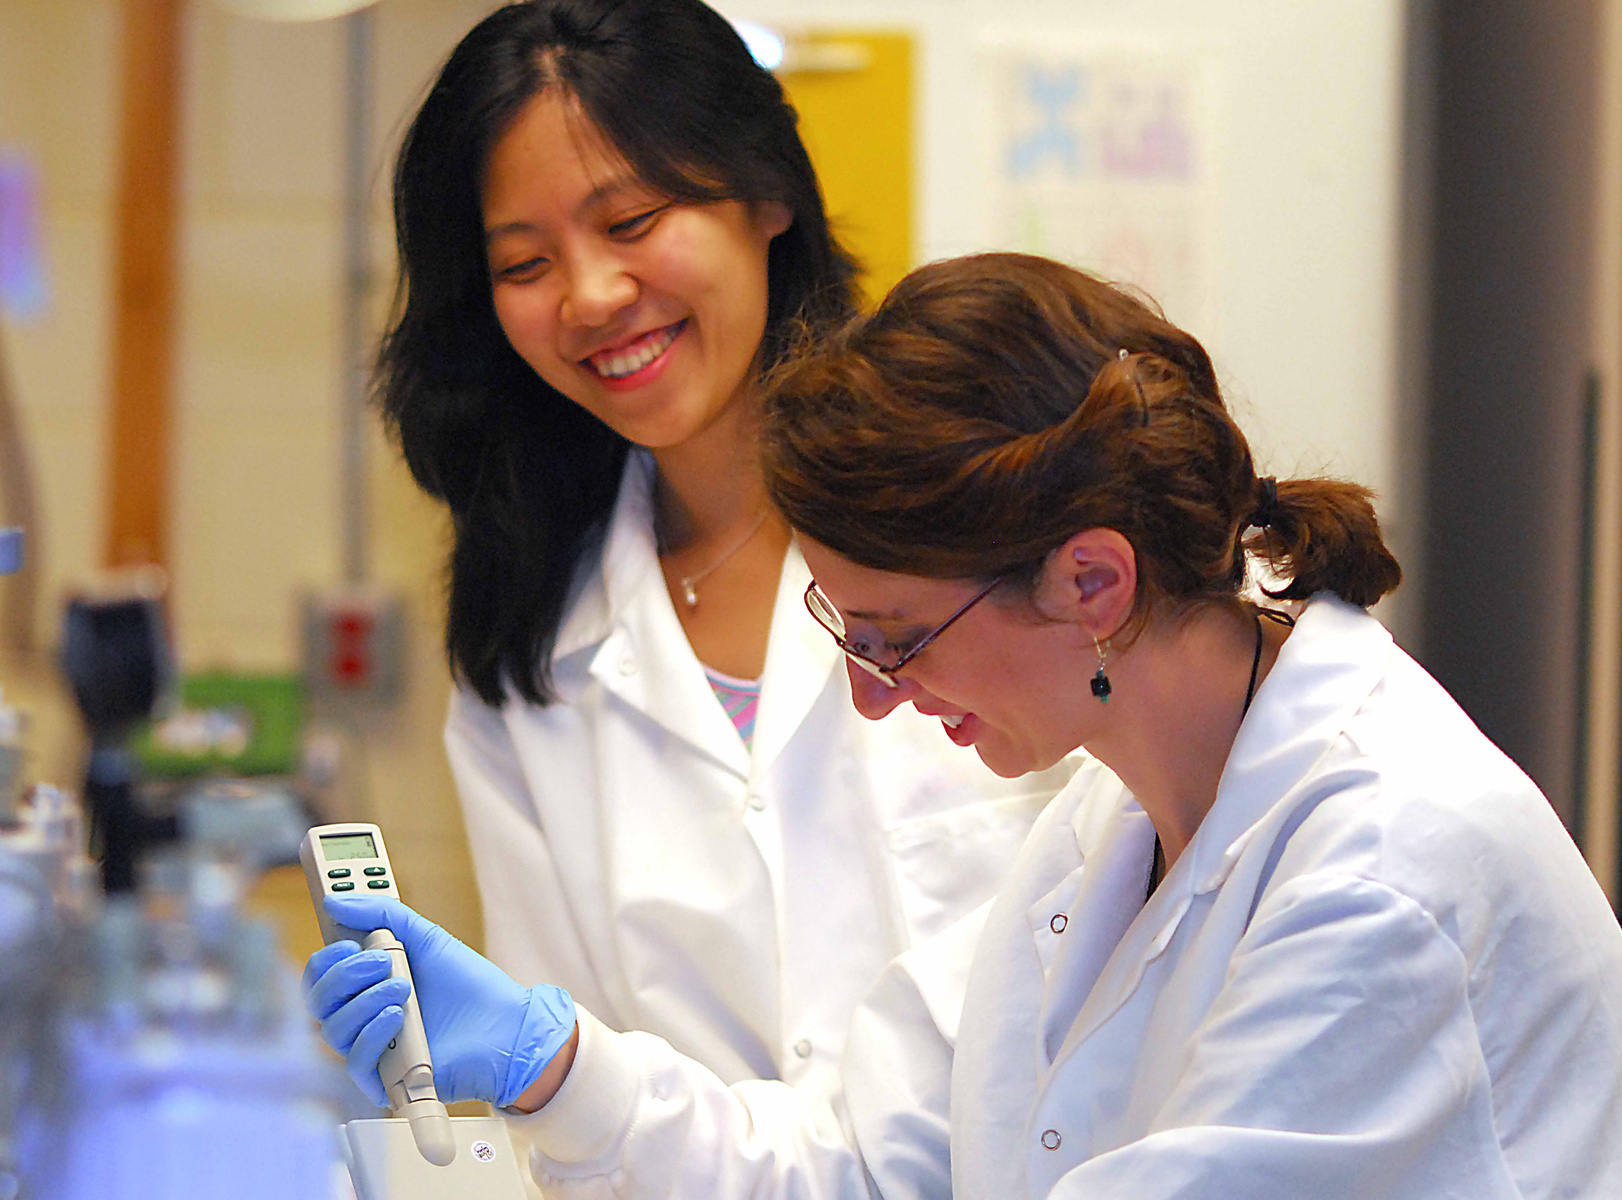 Two female professional students work together in a lab